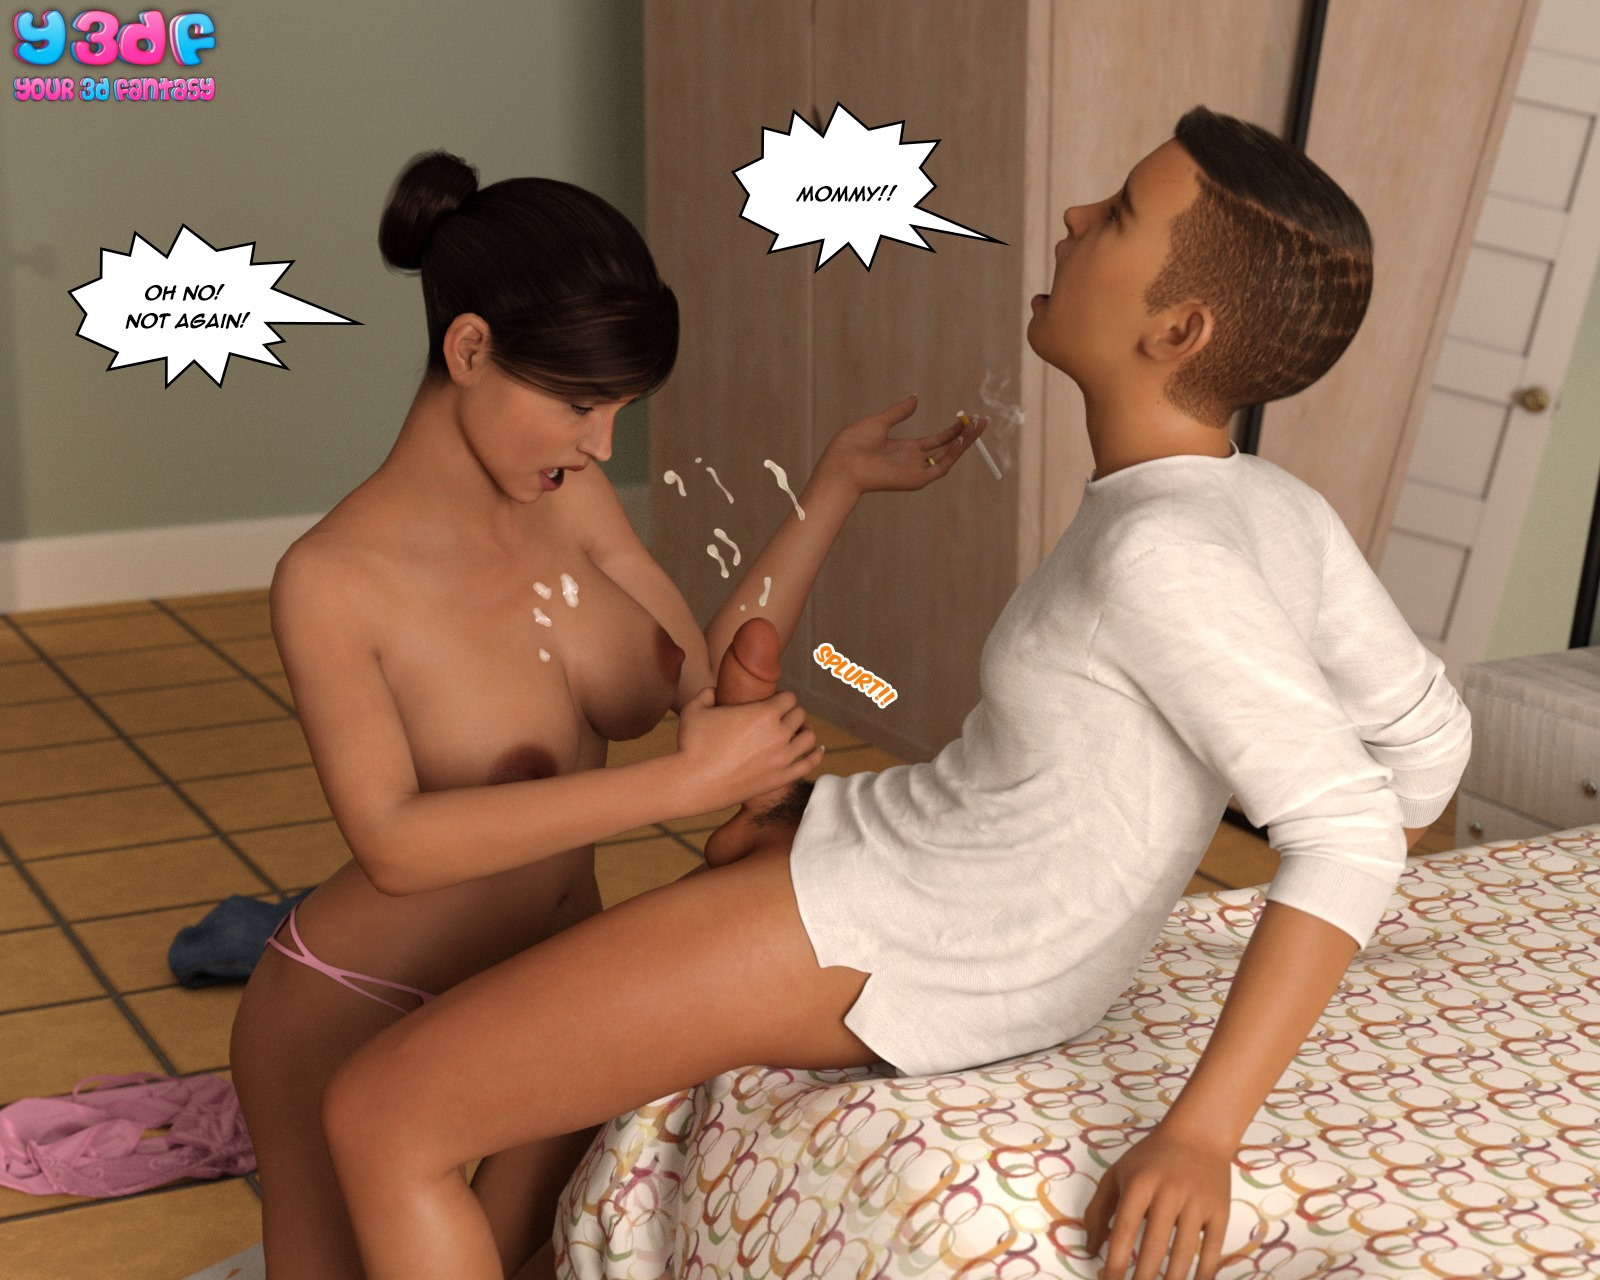 Y3DF – The Tan 2, Mother and Son 3DIncest